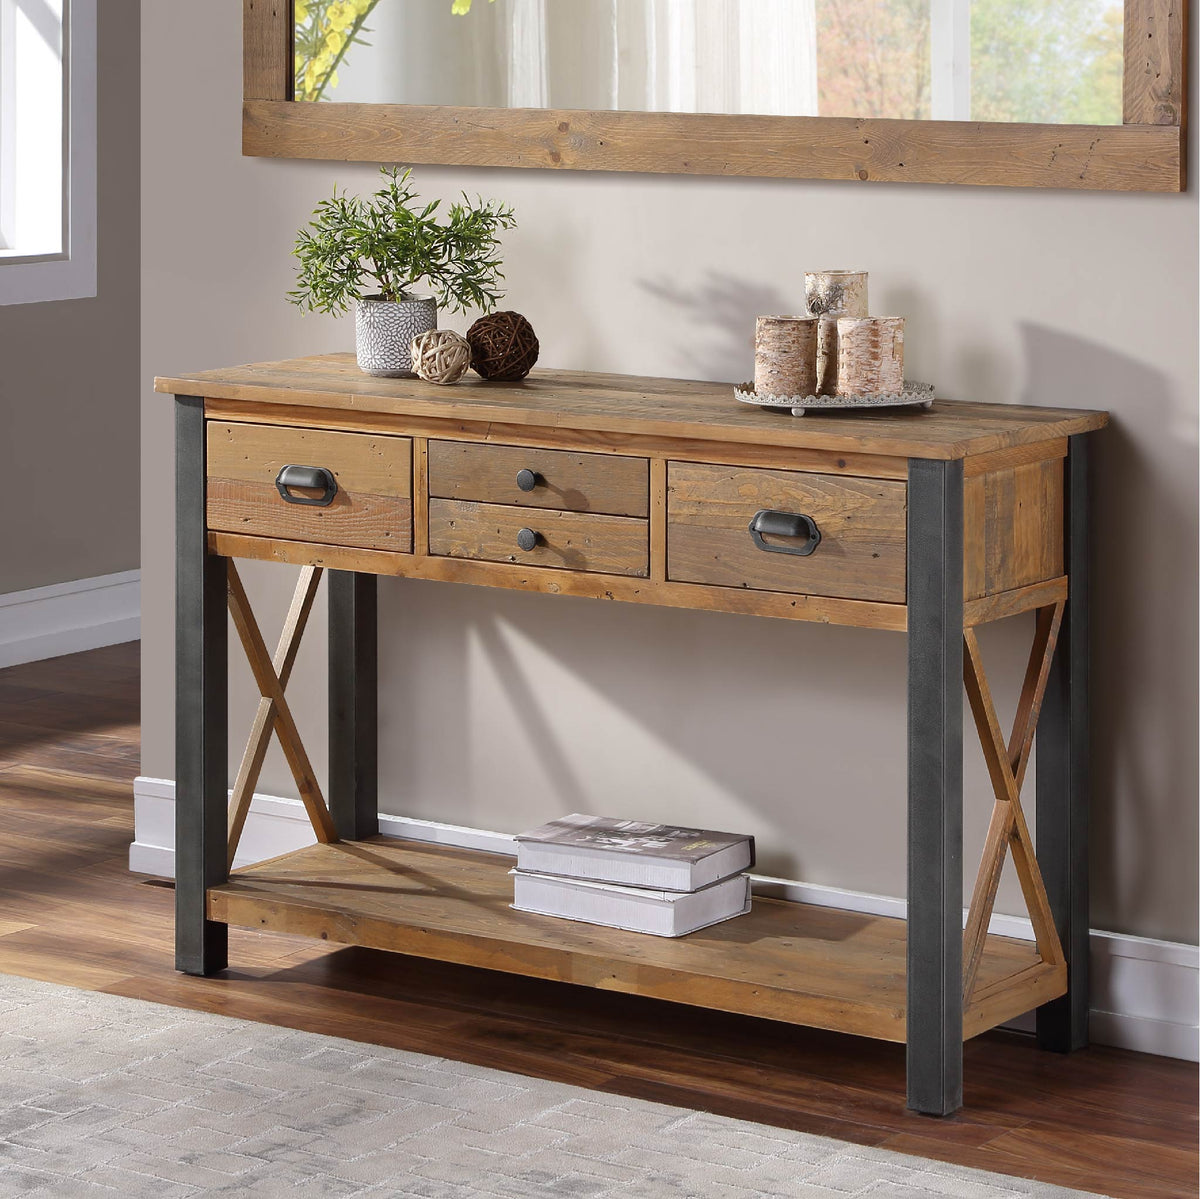 Side view of Urban Elegance Reclaimed Wood Large Console Table